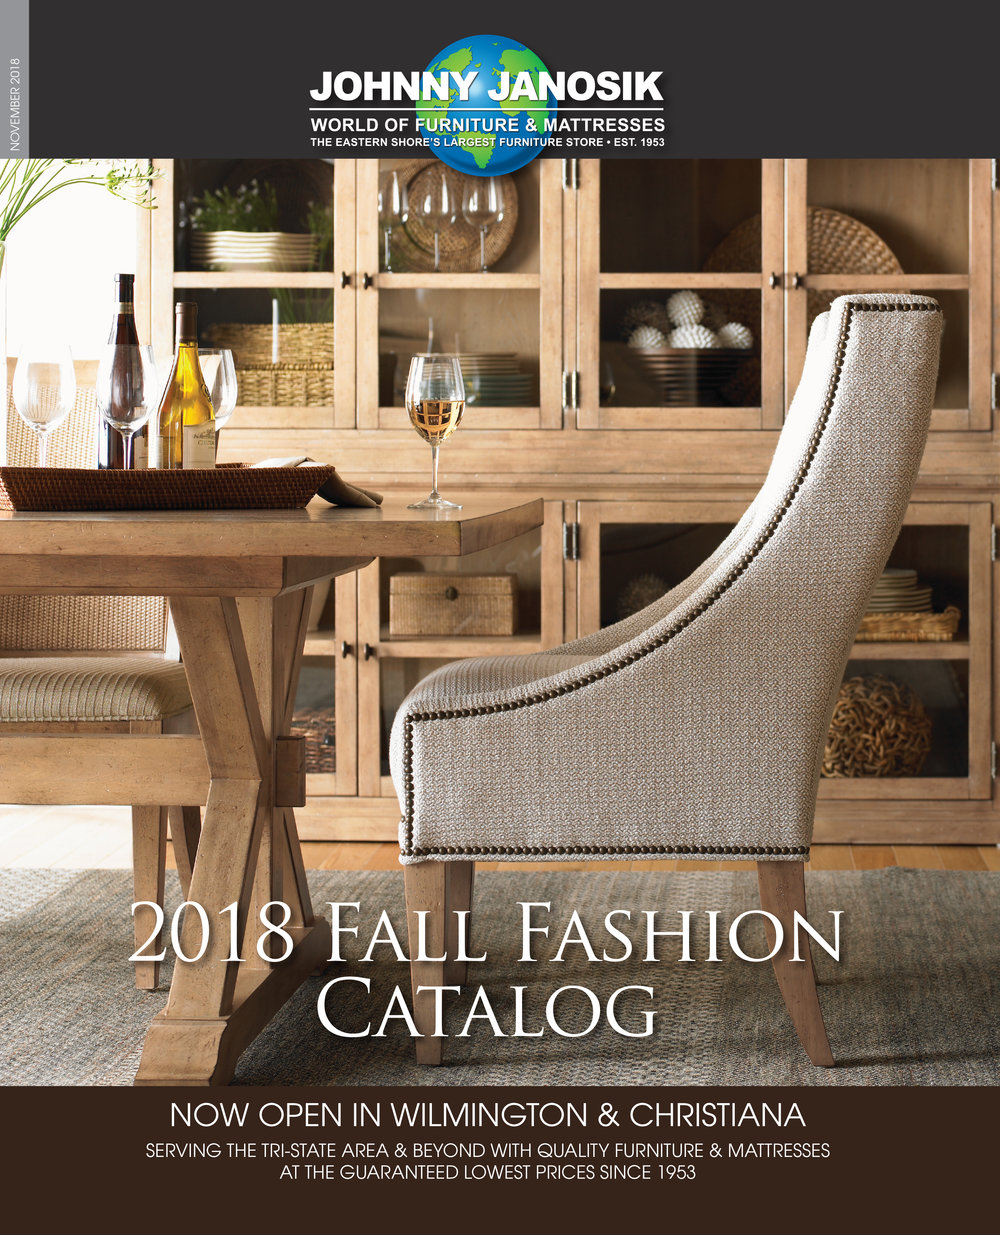 #2_18-11090 JAN_FallFashionCatalog_Cropped COver.jpg